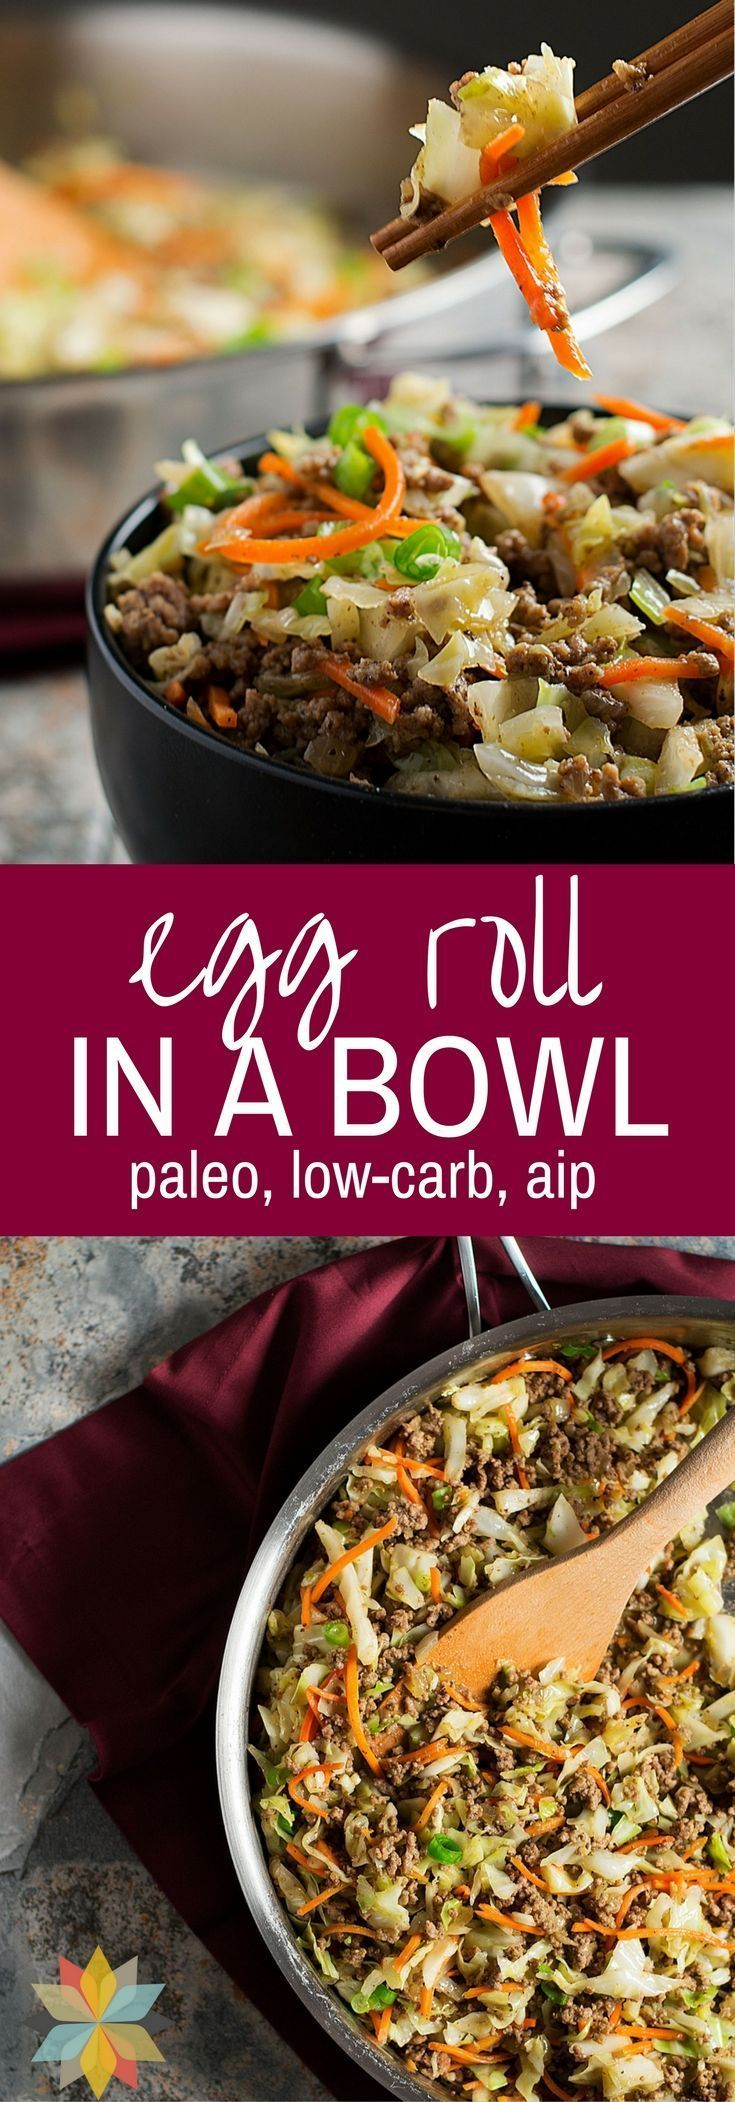 This Egg Roll in a Bowl has all of the great flavor of Egg Rolls, but it's an Easy One Pan Meal without the grain wrapper! #grainfree #glutenfree #paleo #aip